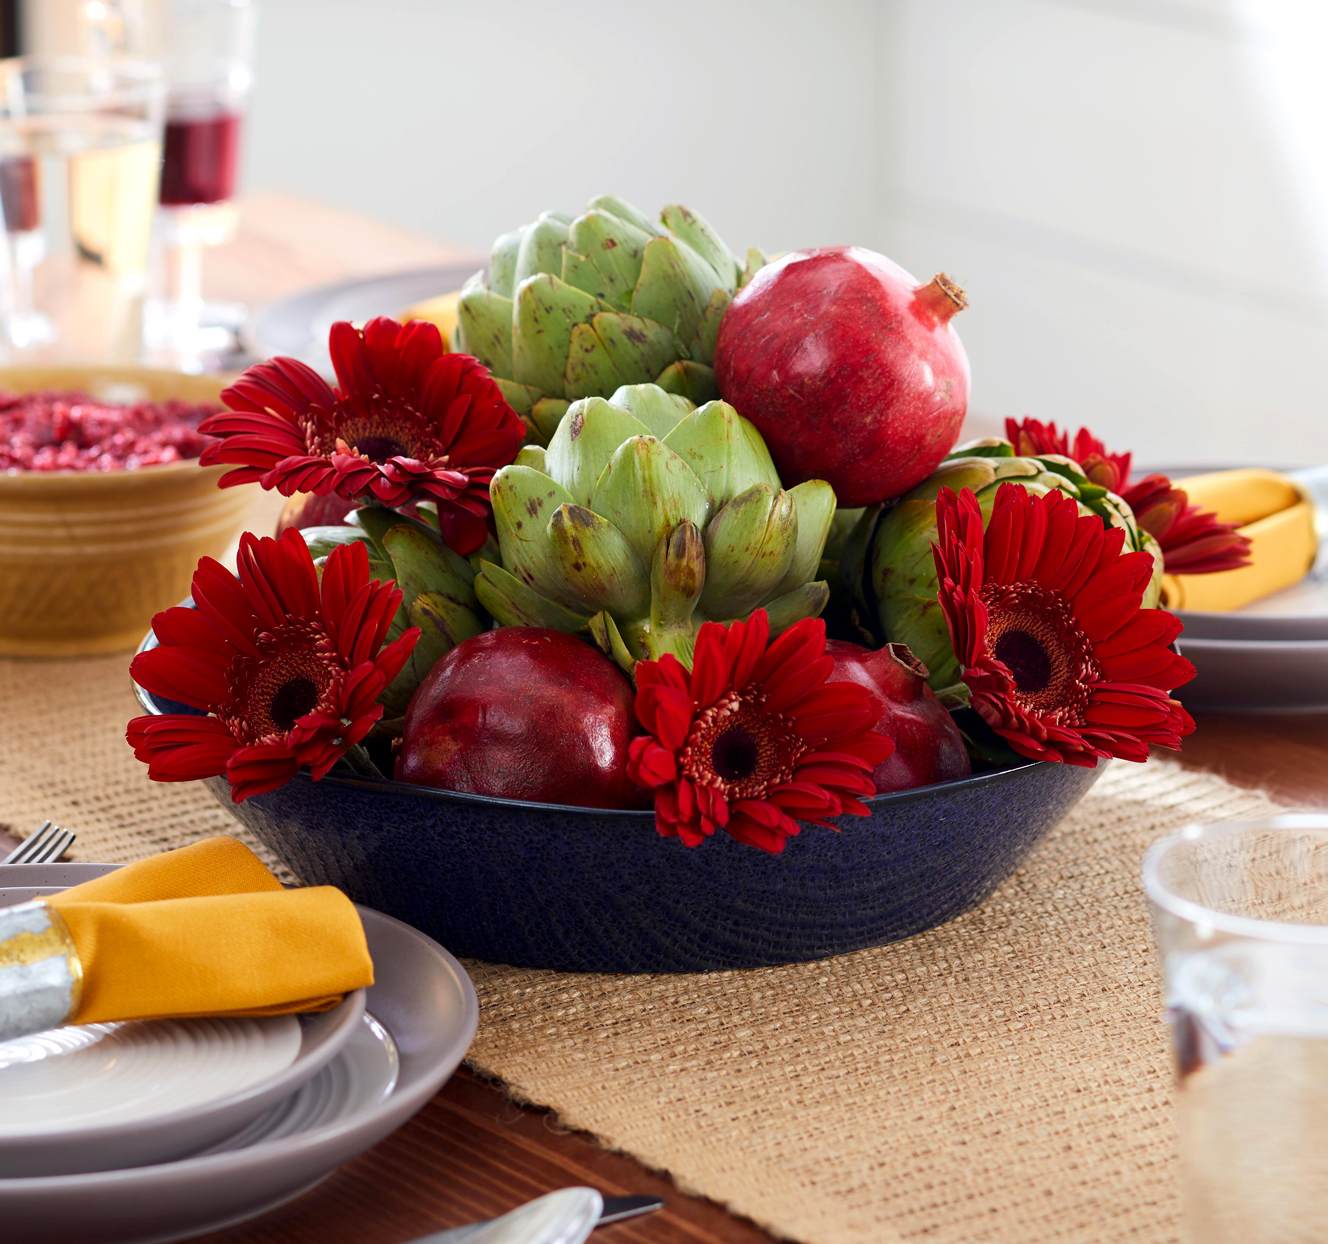 pomegranate and artichoke centerpiece